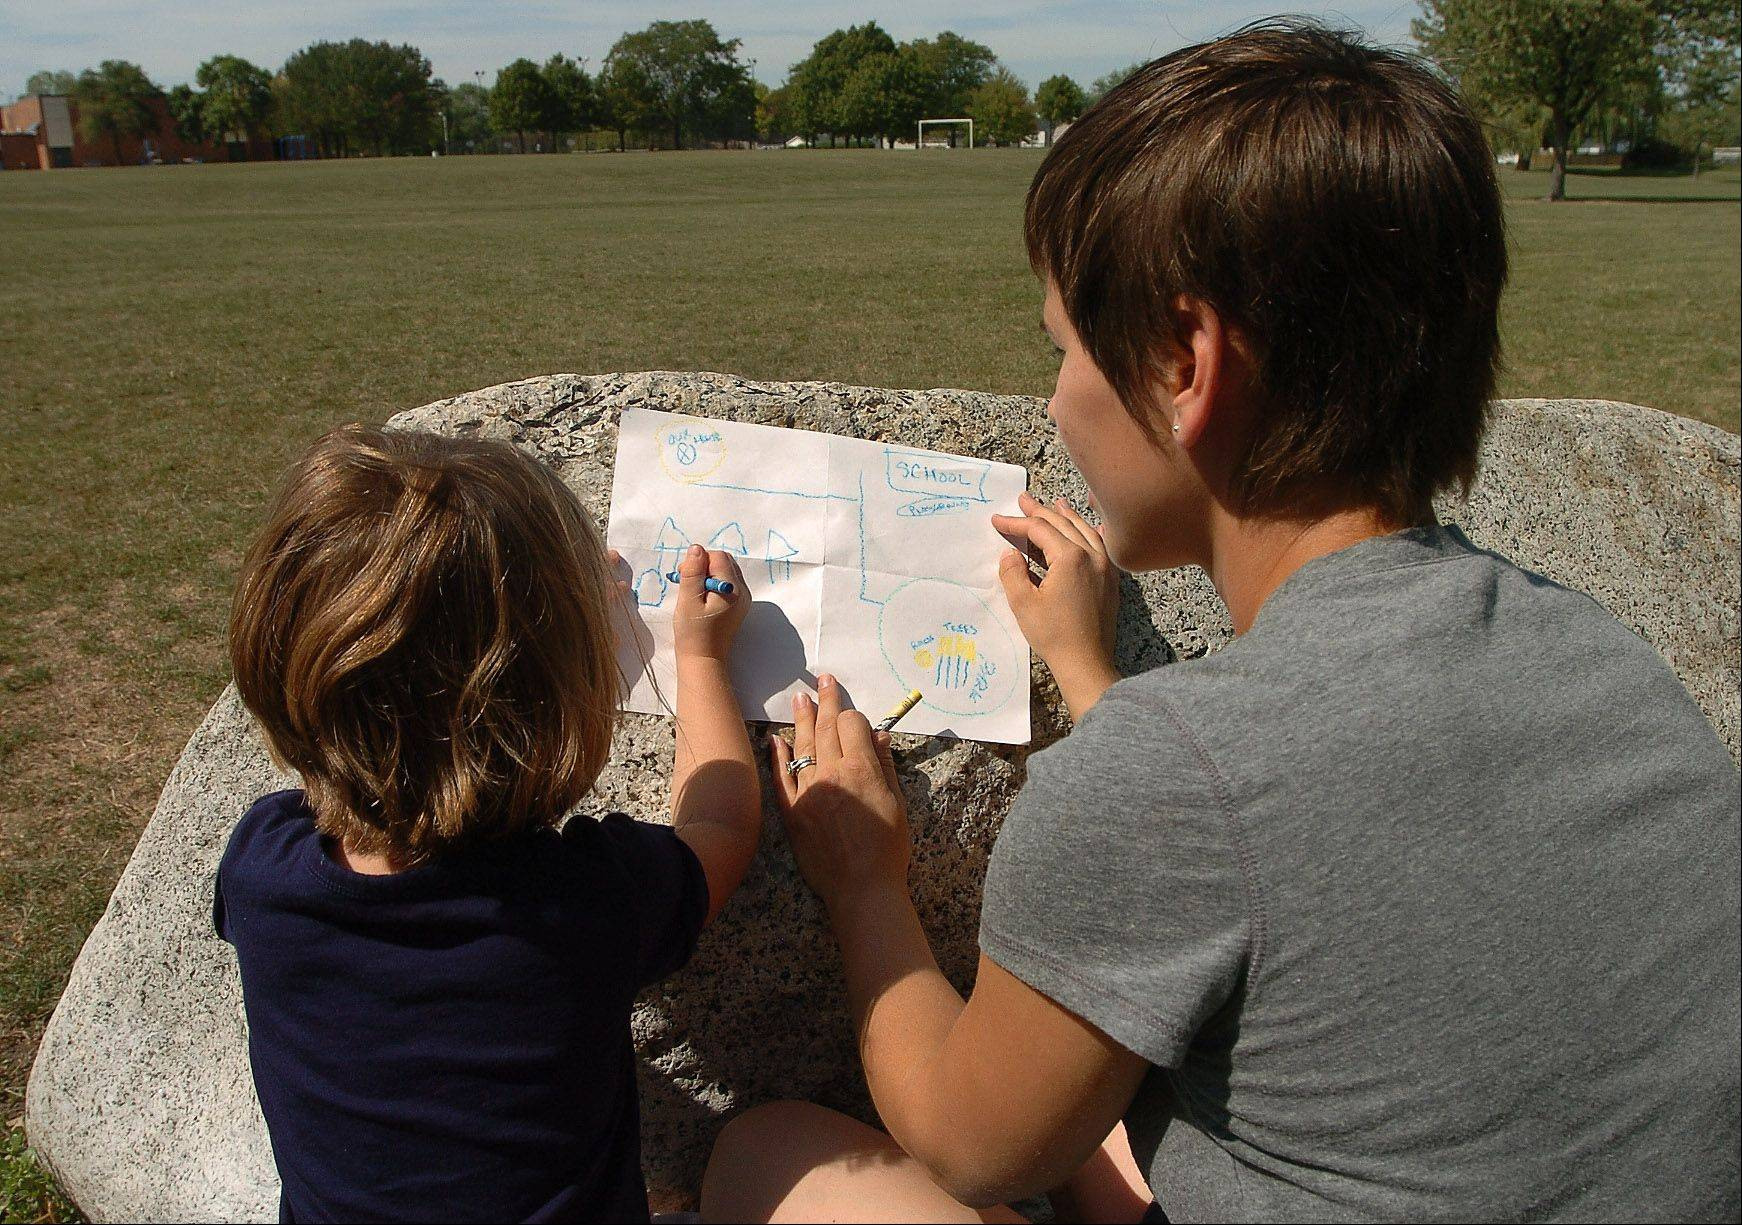 Lily and Rebecca Anderson check off on a map what they've found along their nature hike in Hoover Park.